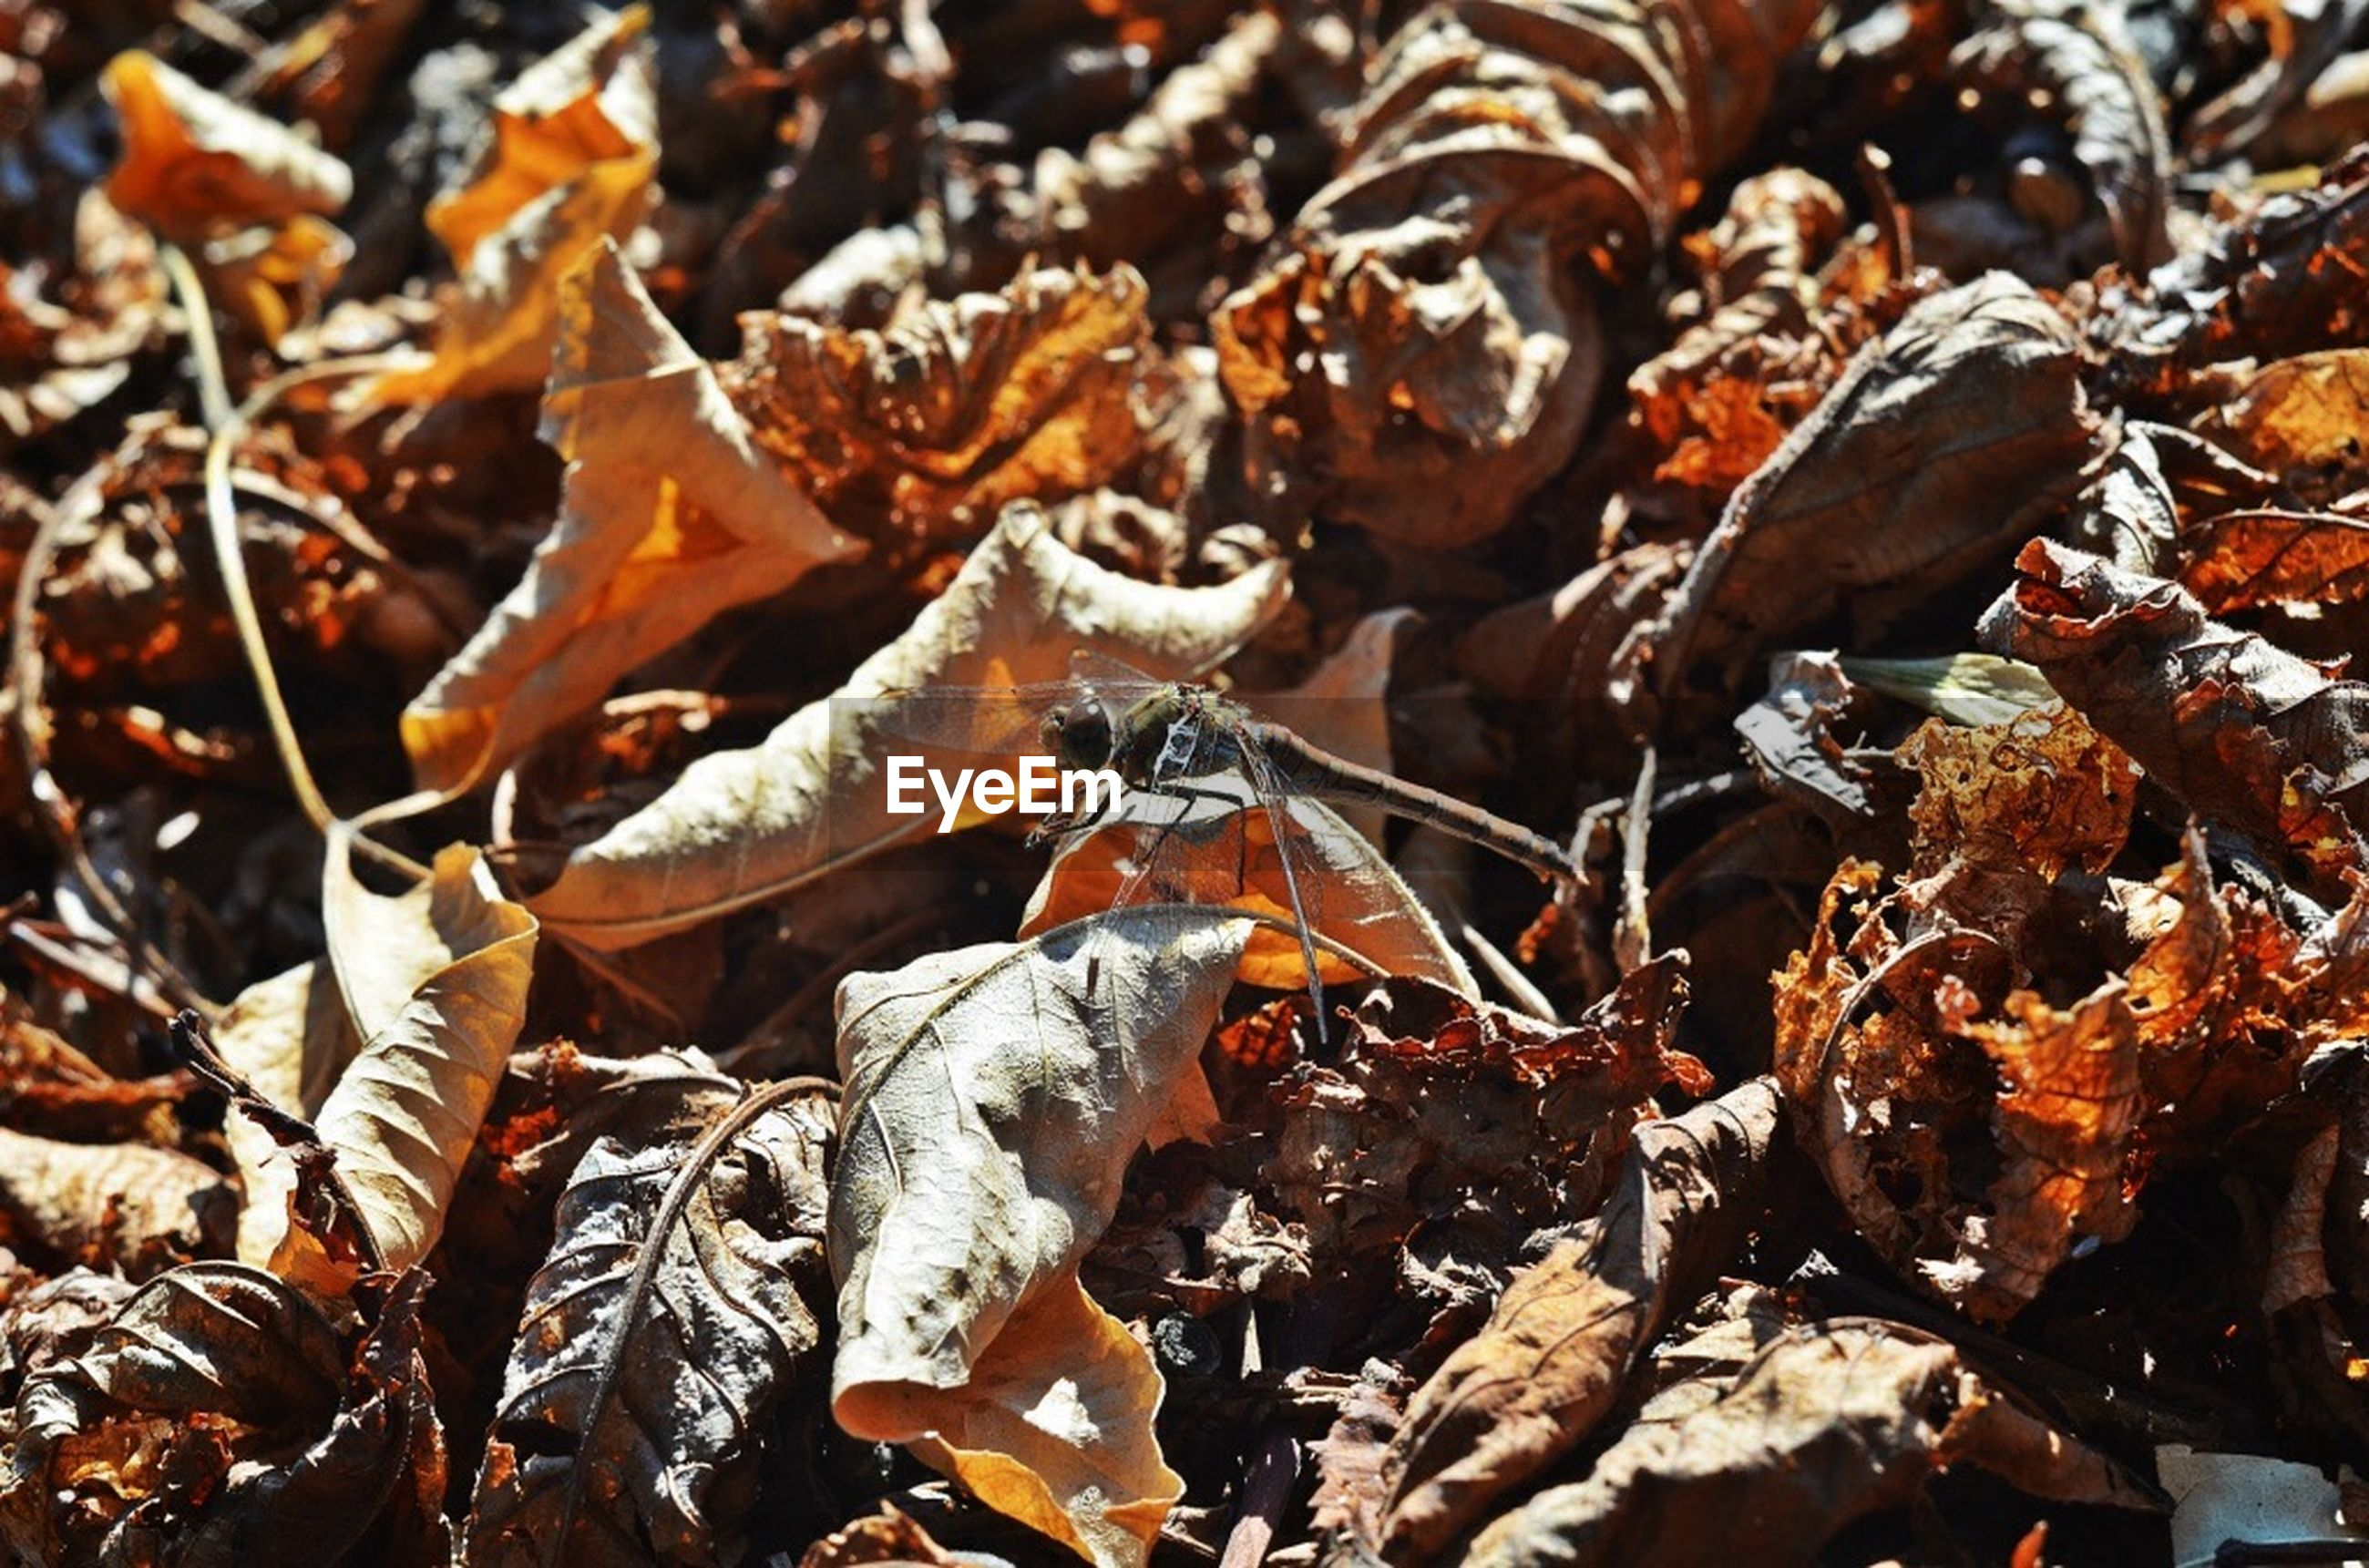 leaf, dry, close-up, autumn, nature, focus on foreground, day, outdoors, change, leaves, high angle view, no people, natural pattern, field, abundance, brown, season, fragility, growth, selective focus